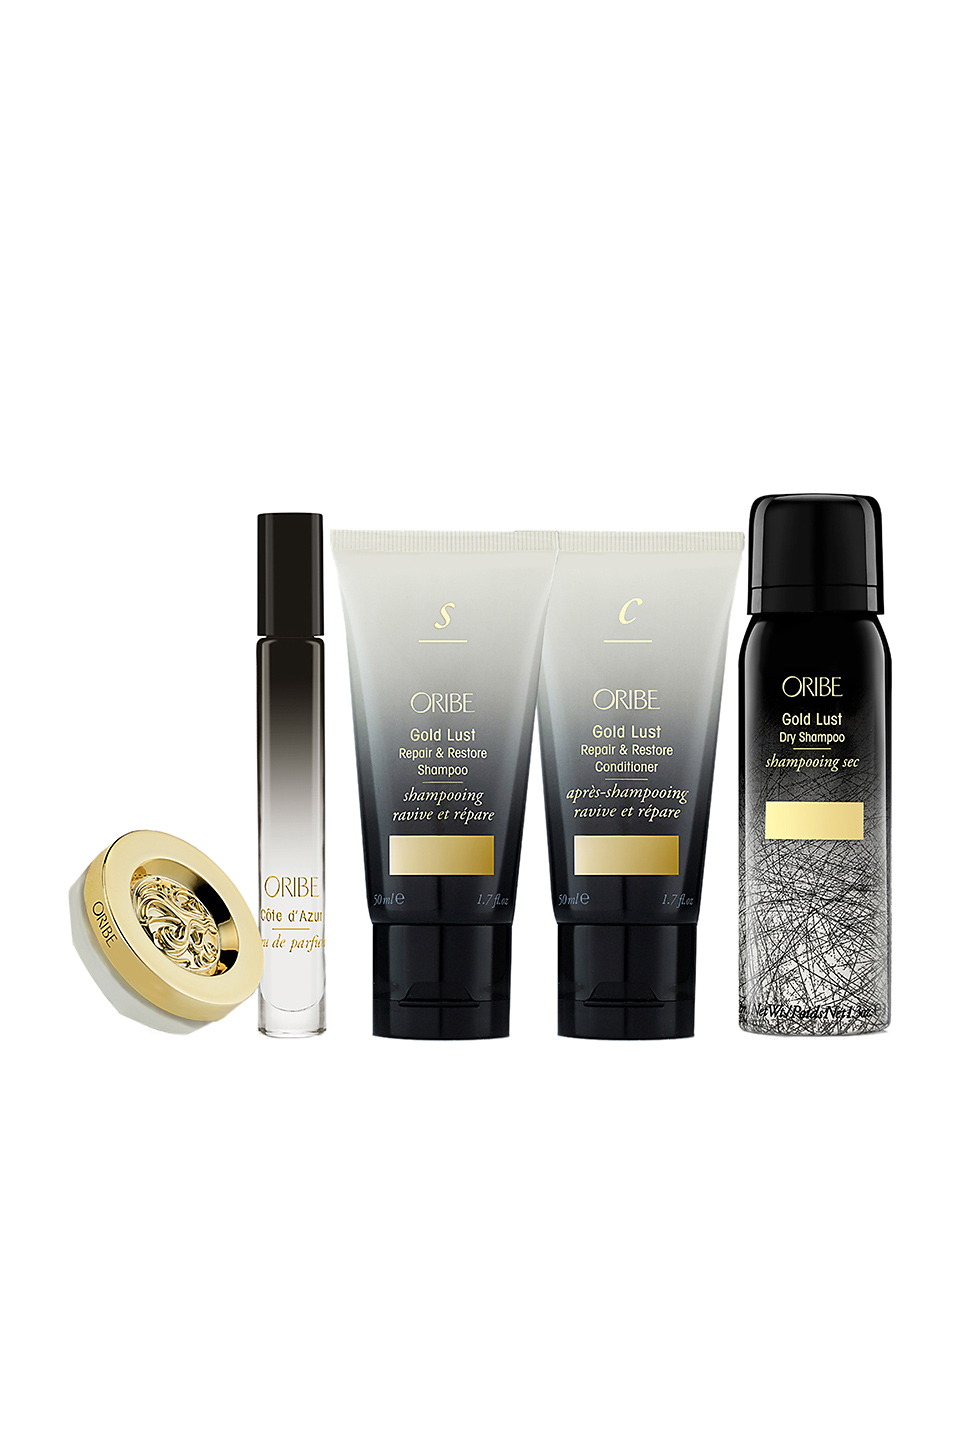 Oribe Travel Essentials Set in